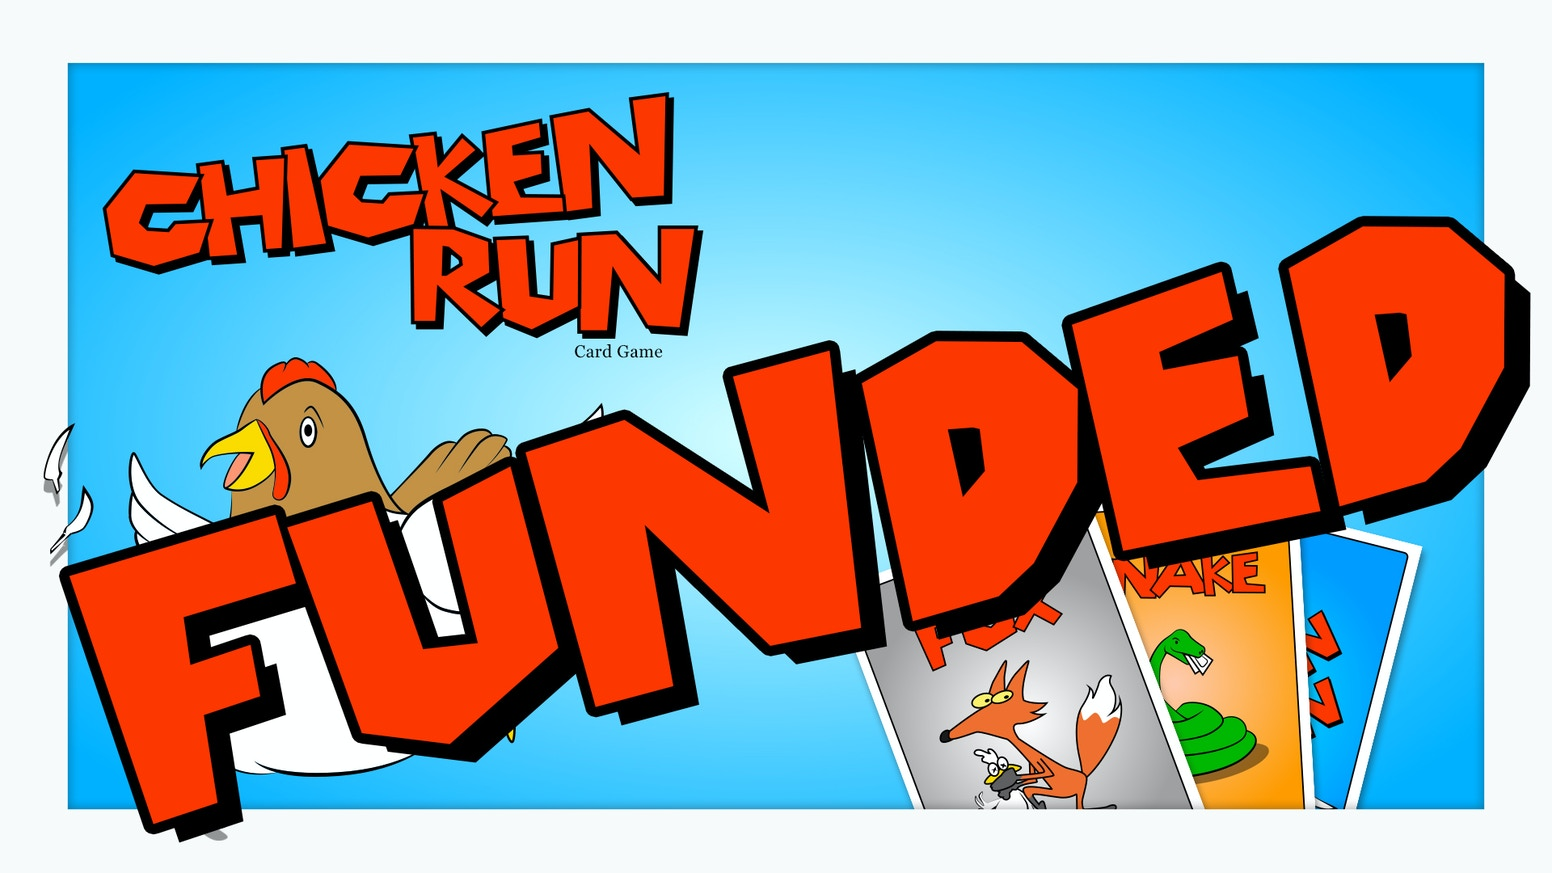 Chicken Run is a fun, exciting, and quick collection game that involves matching chickens, avoiding pesky varmints, and creating runs.